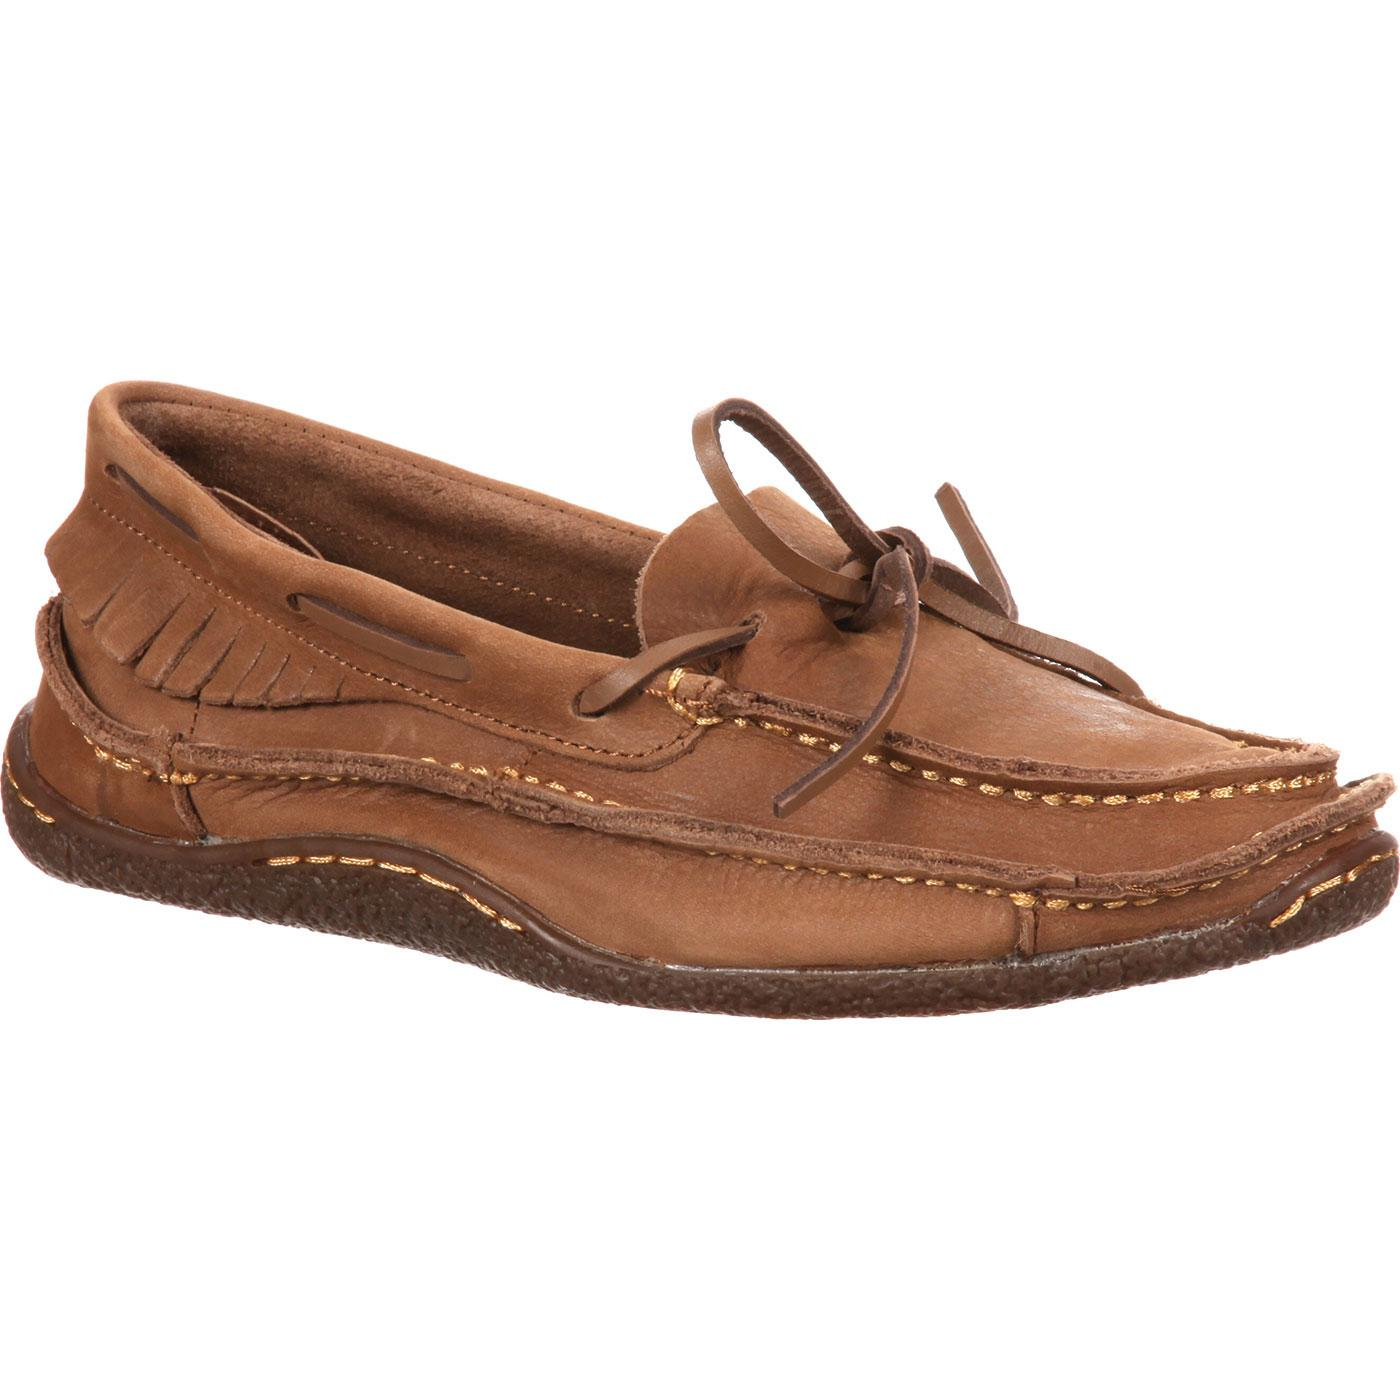 Womens Leather Moccasins Shoes